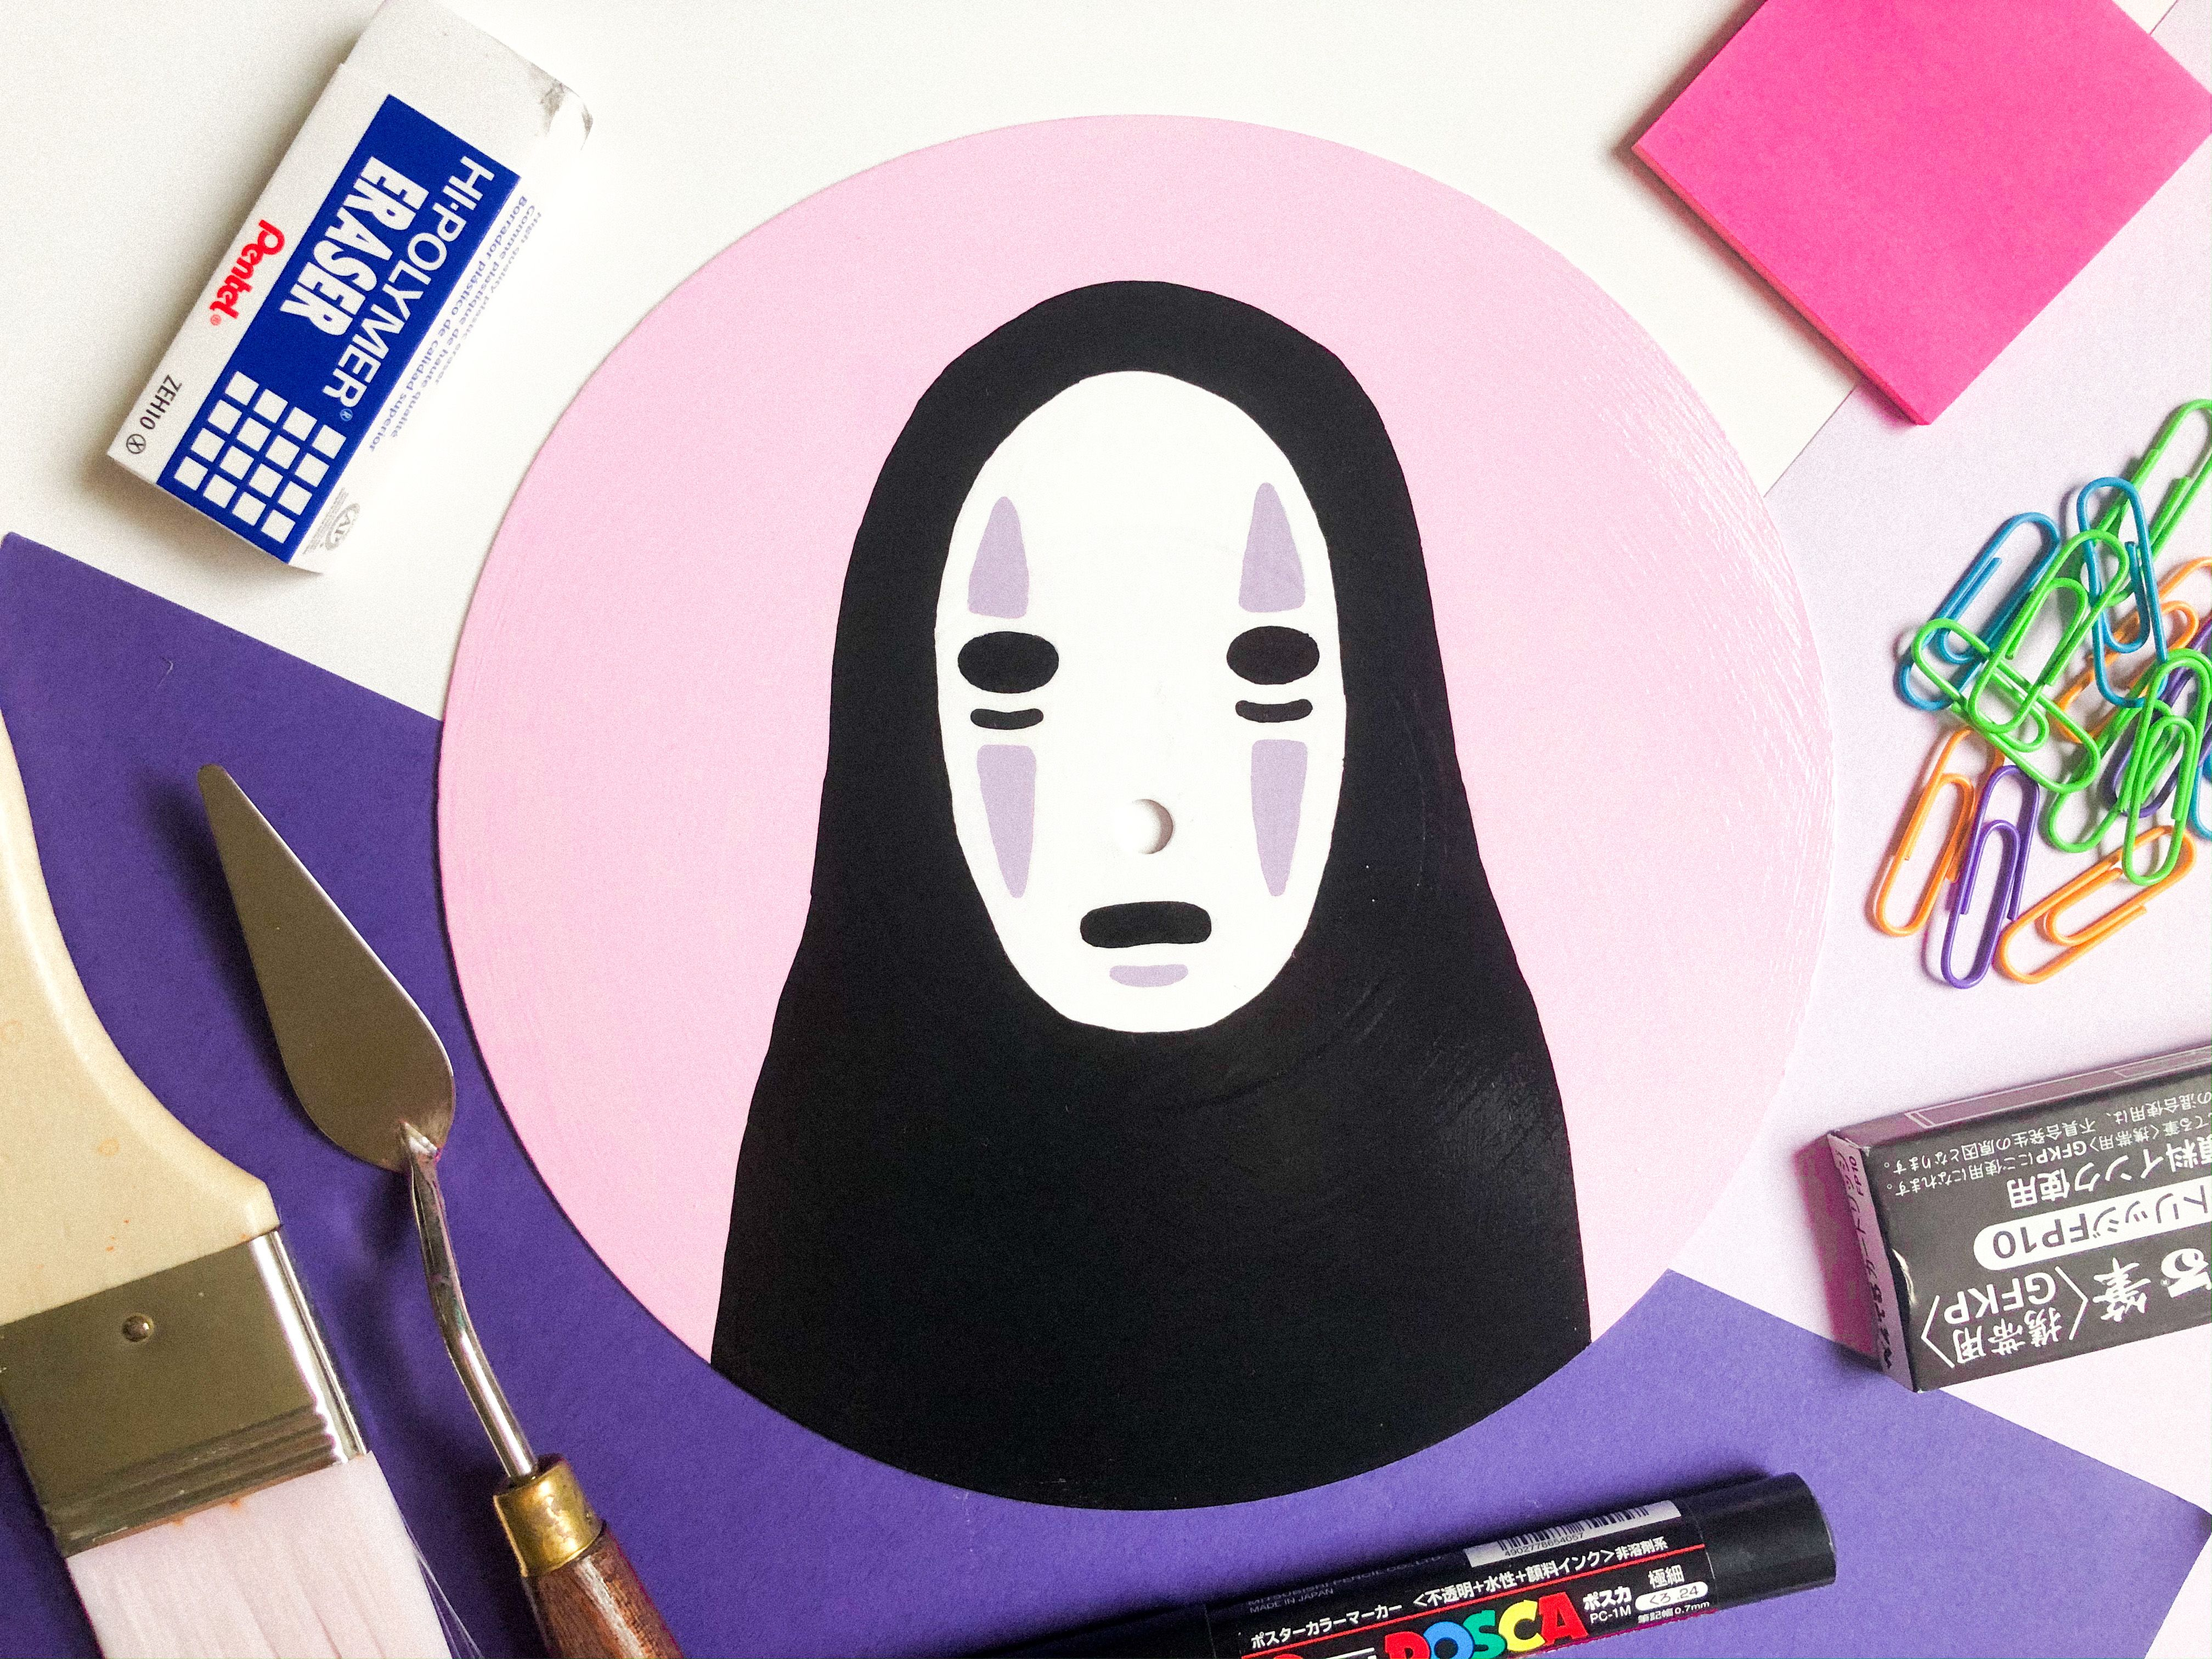 No Face Spirited Away Vinyl Record Painting In 2020 Instagram Instagram Photo Photo And Video